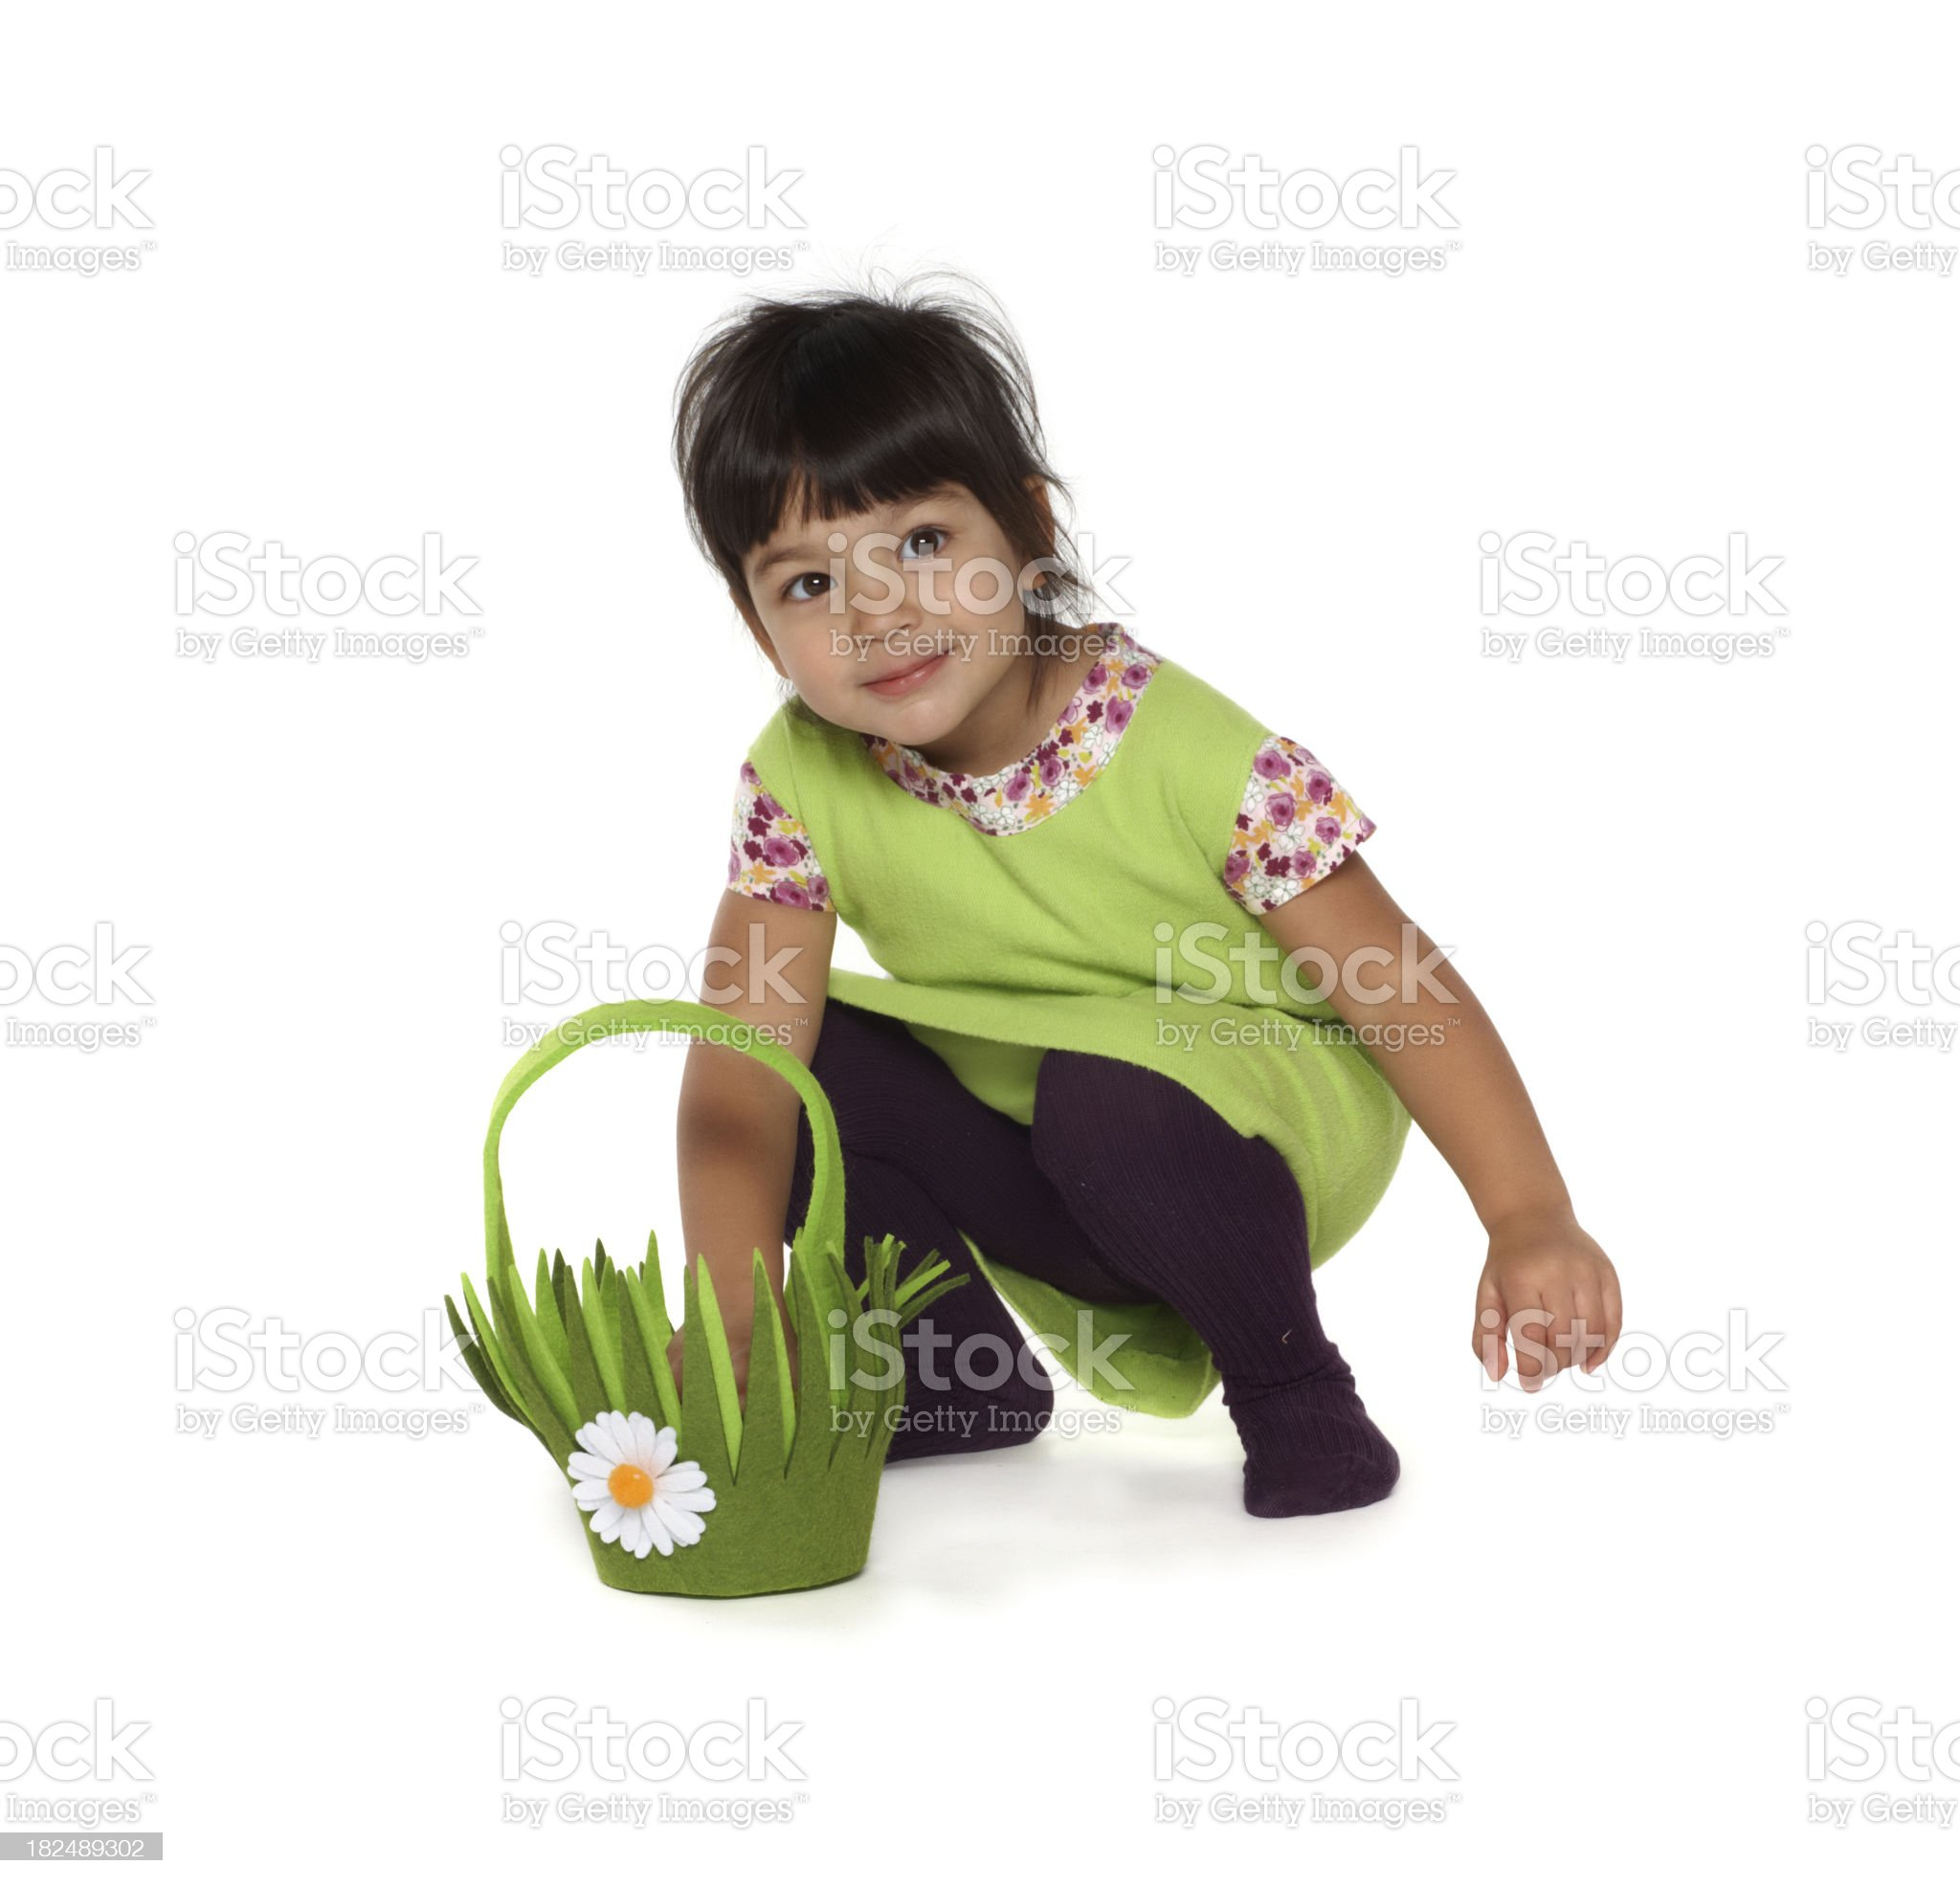 beautiful little baby girl with easter basket royalty-free stock photo